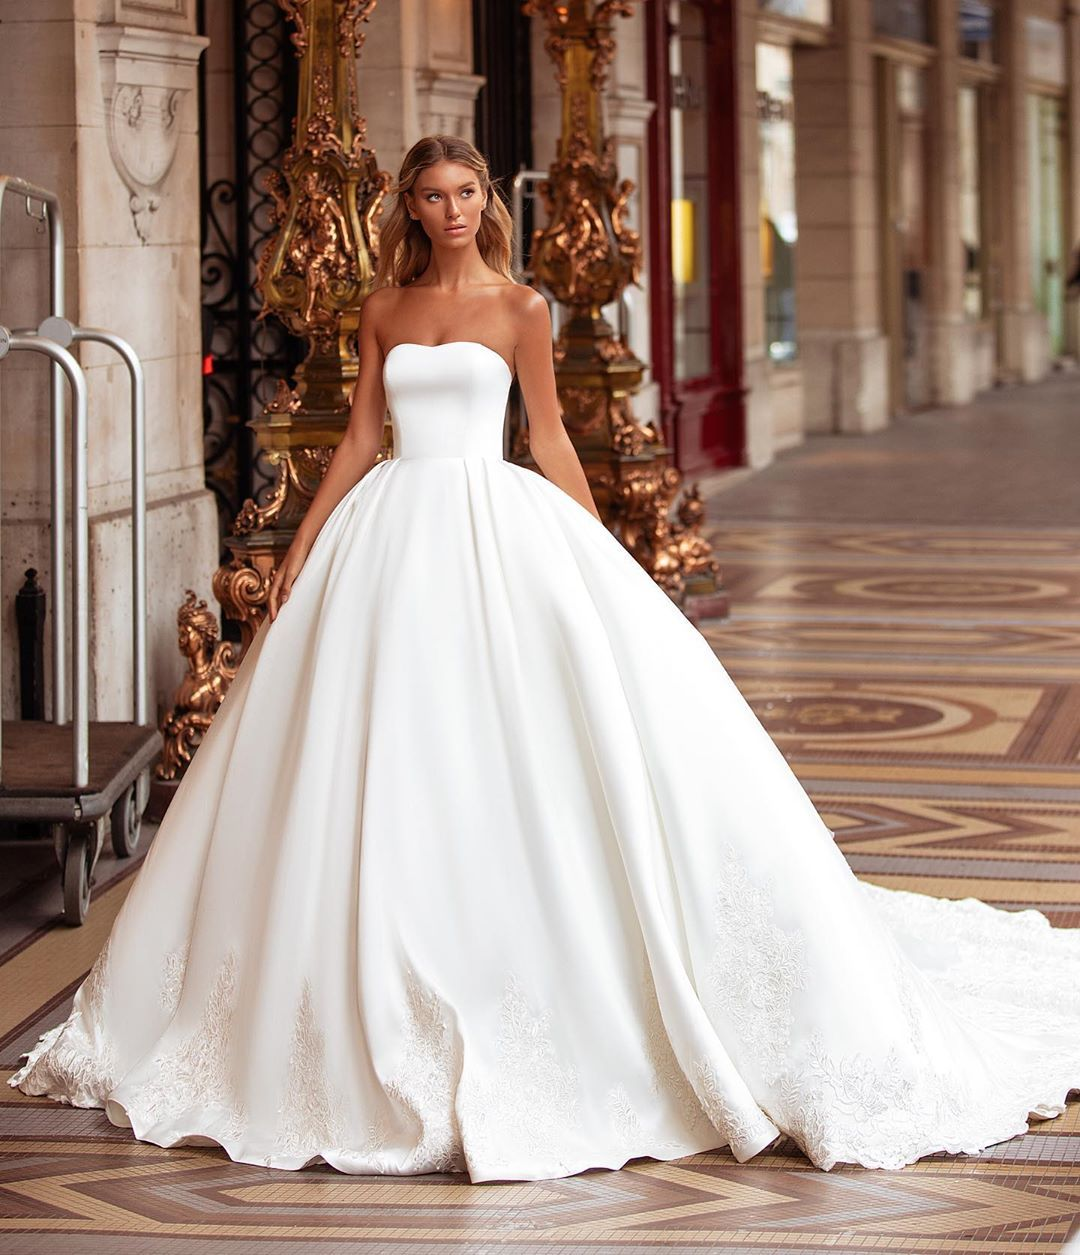 30 wedding dresses vintage princess 2020 you must love